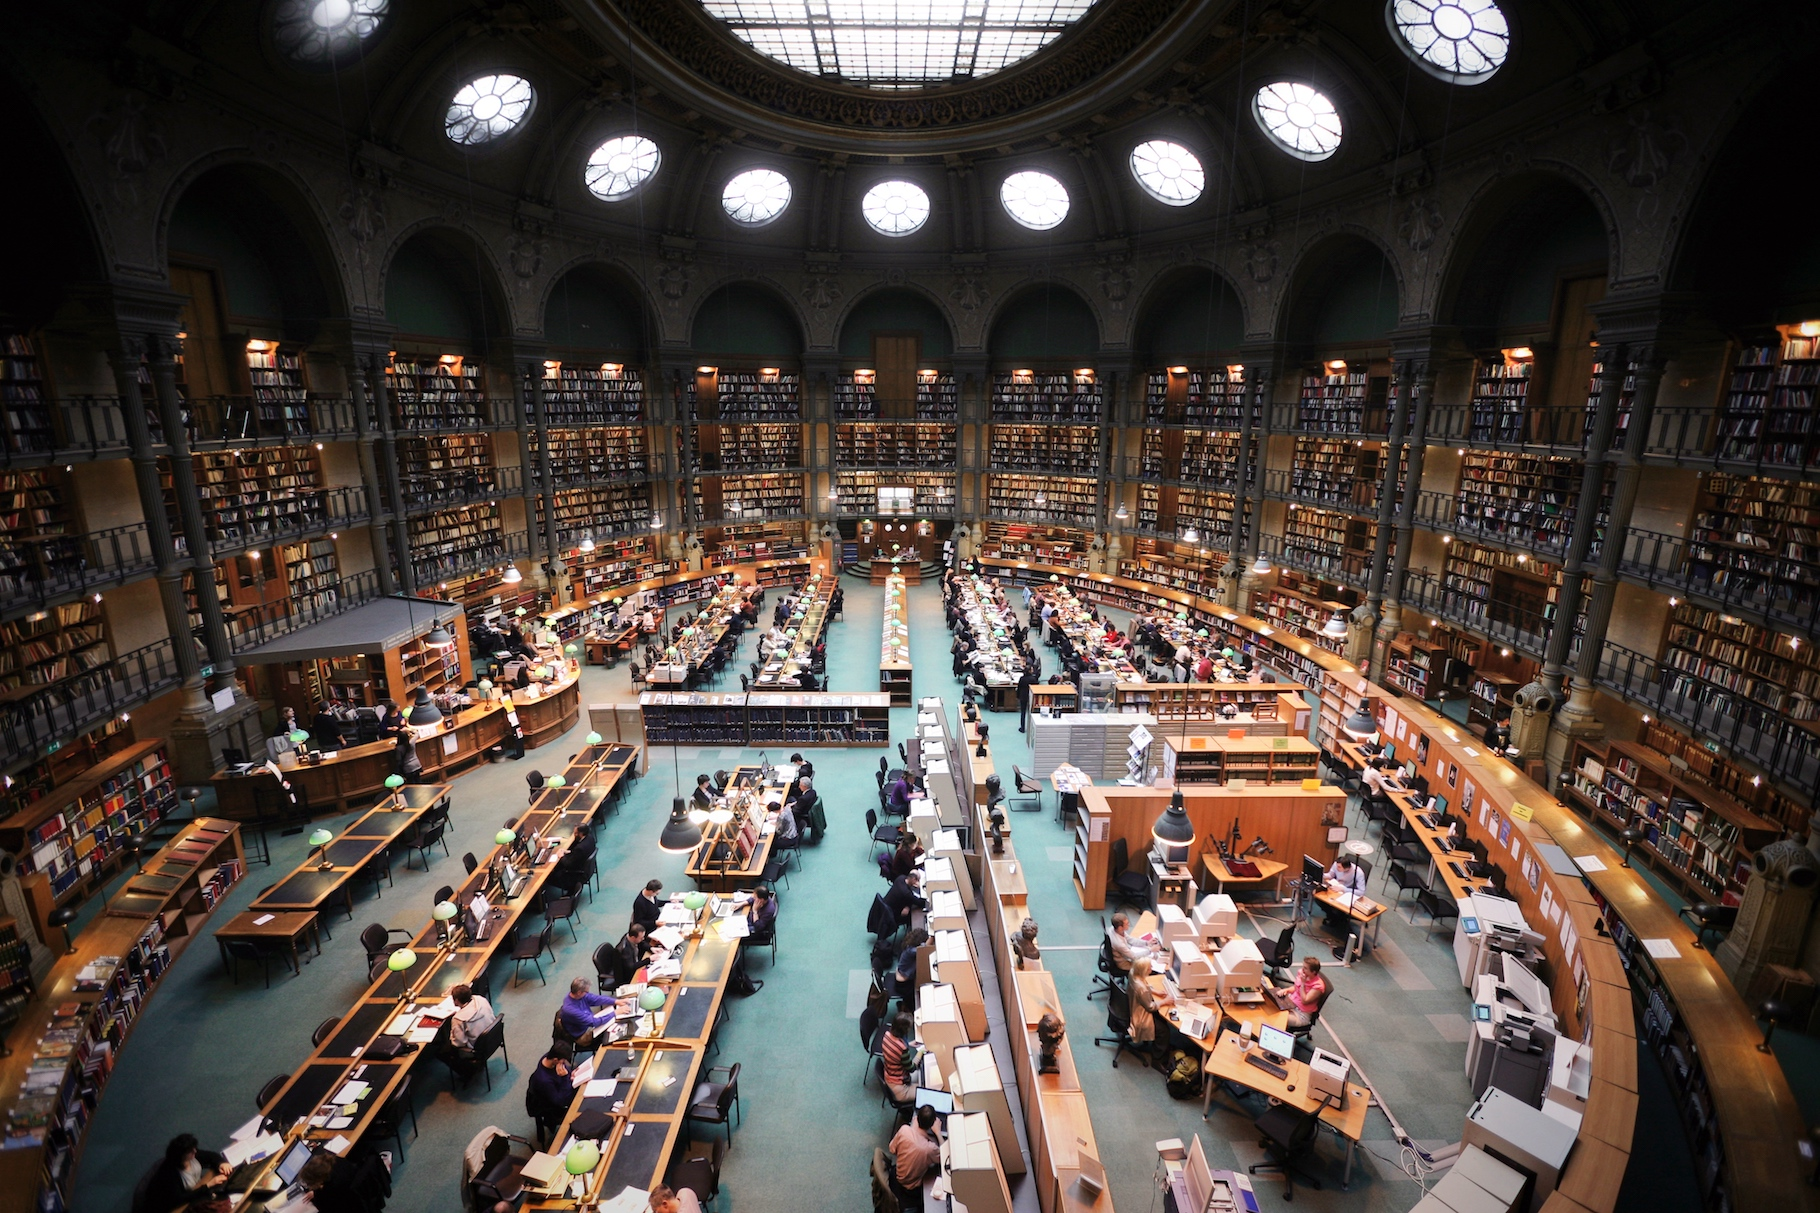 The national library of France